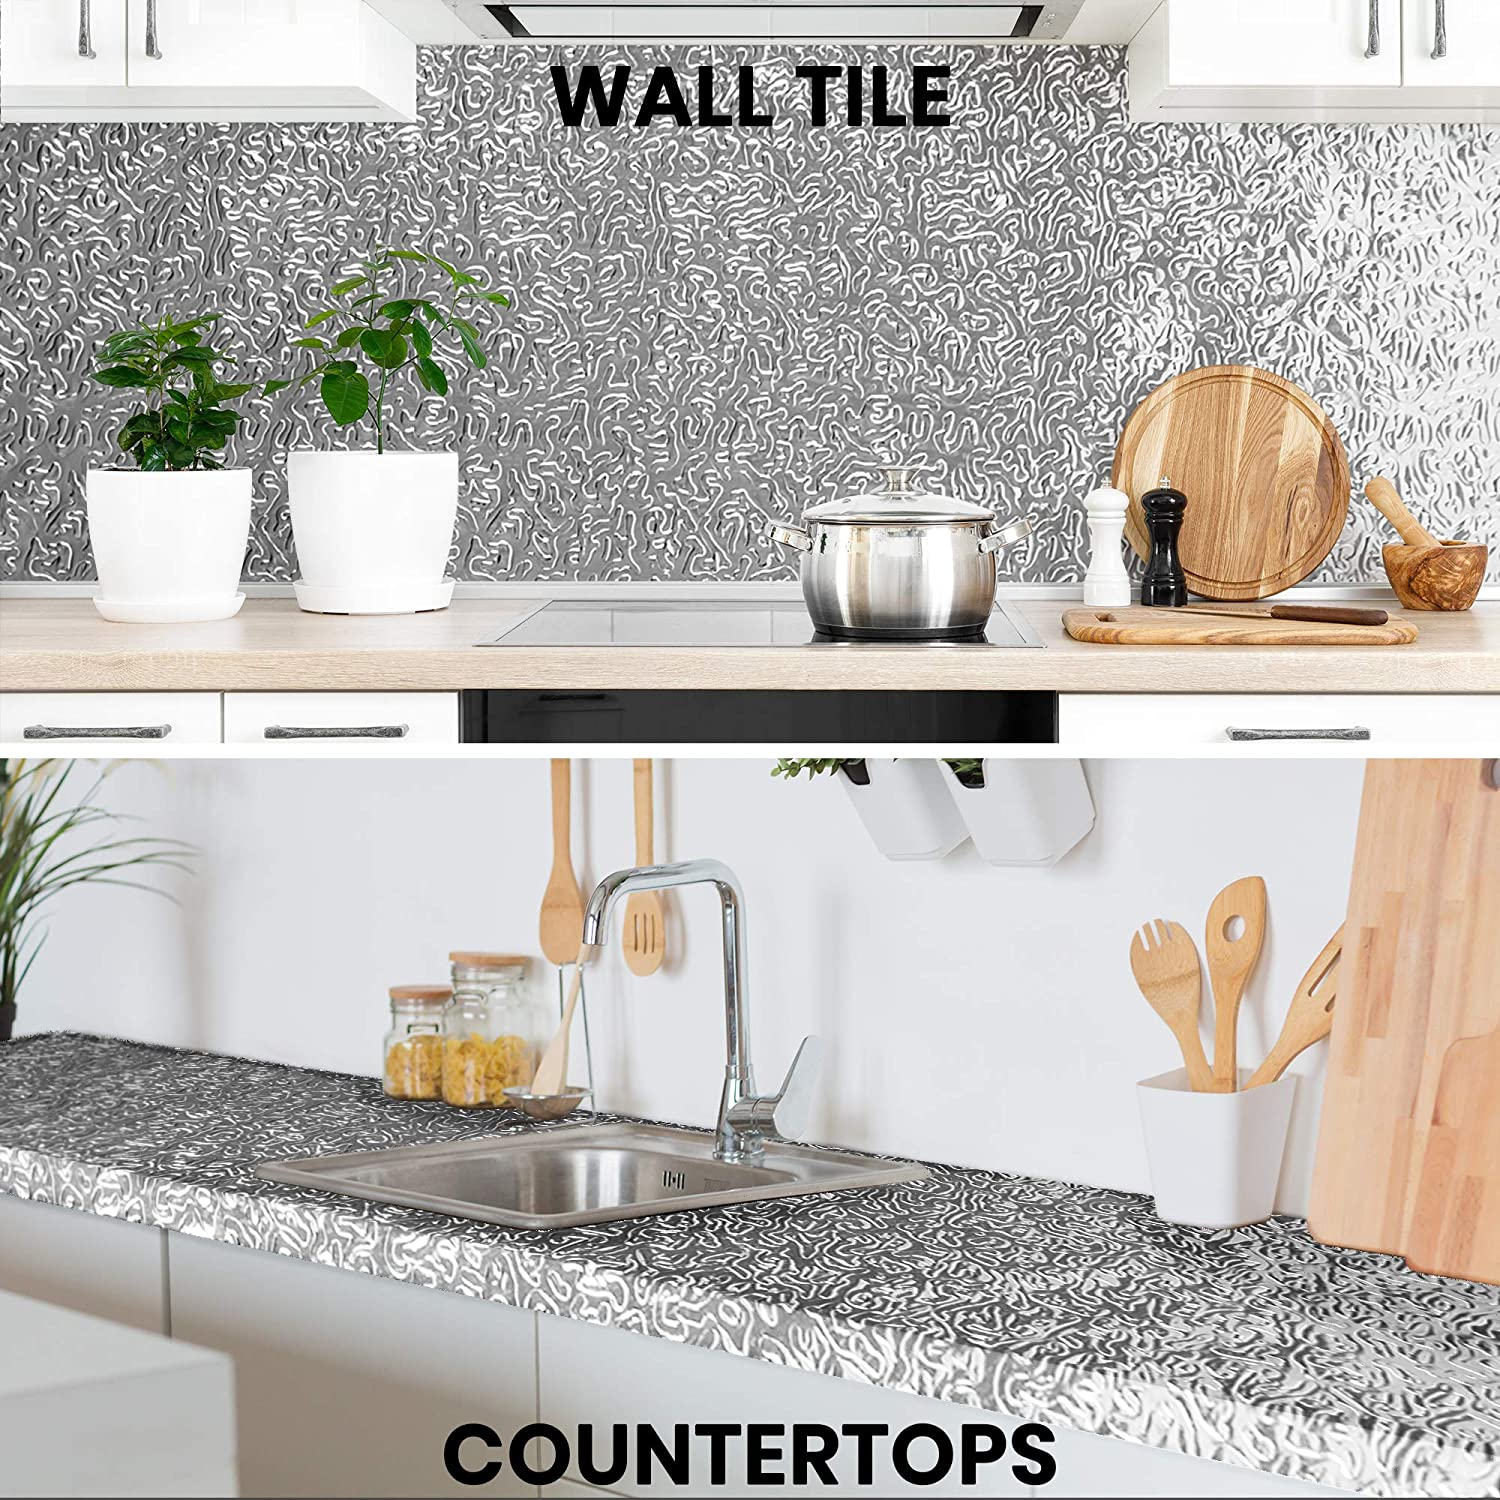 self adhesive aluminum foil sticker for kitchen cabinet wallpaper oil proof waterproof wall protector with heat resistant stove cabinet stickers